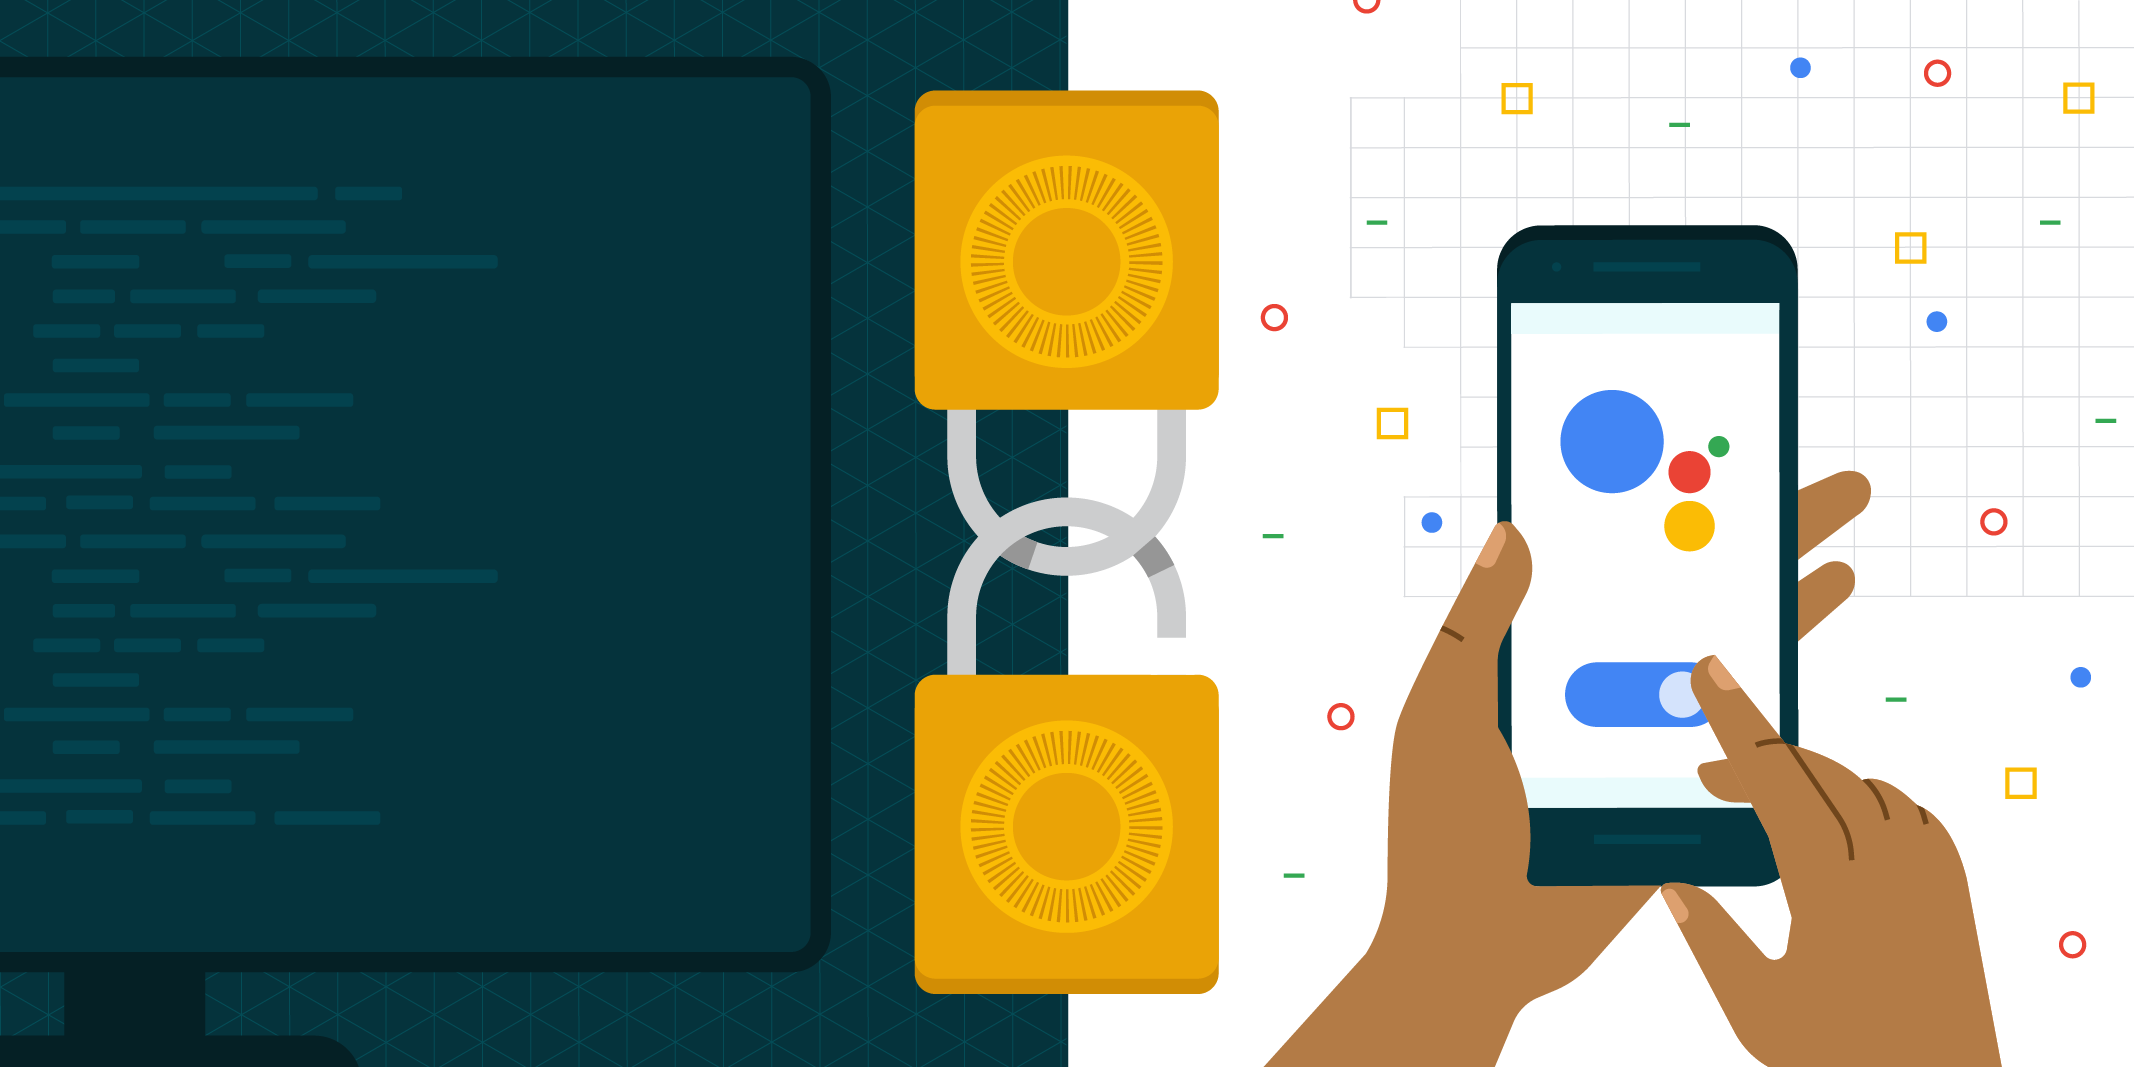 Illustration of 2 animated locks and phone with Actions on Google logo on screen